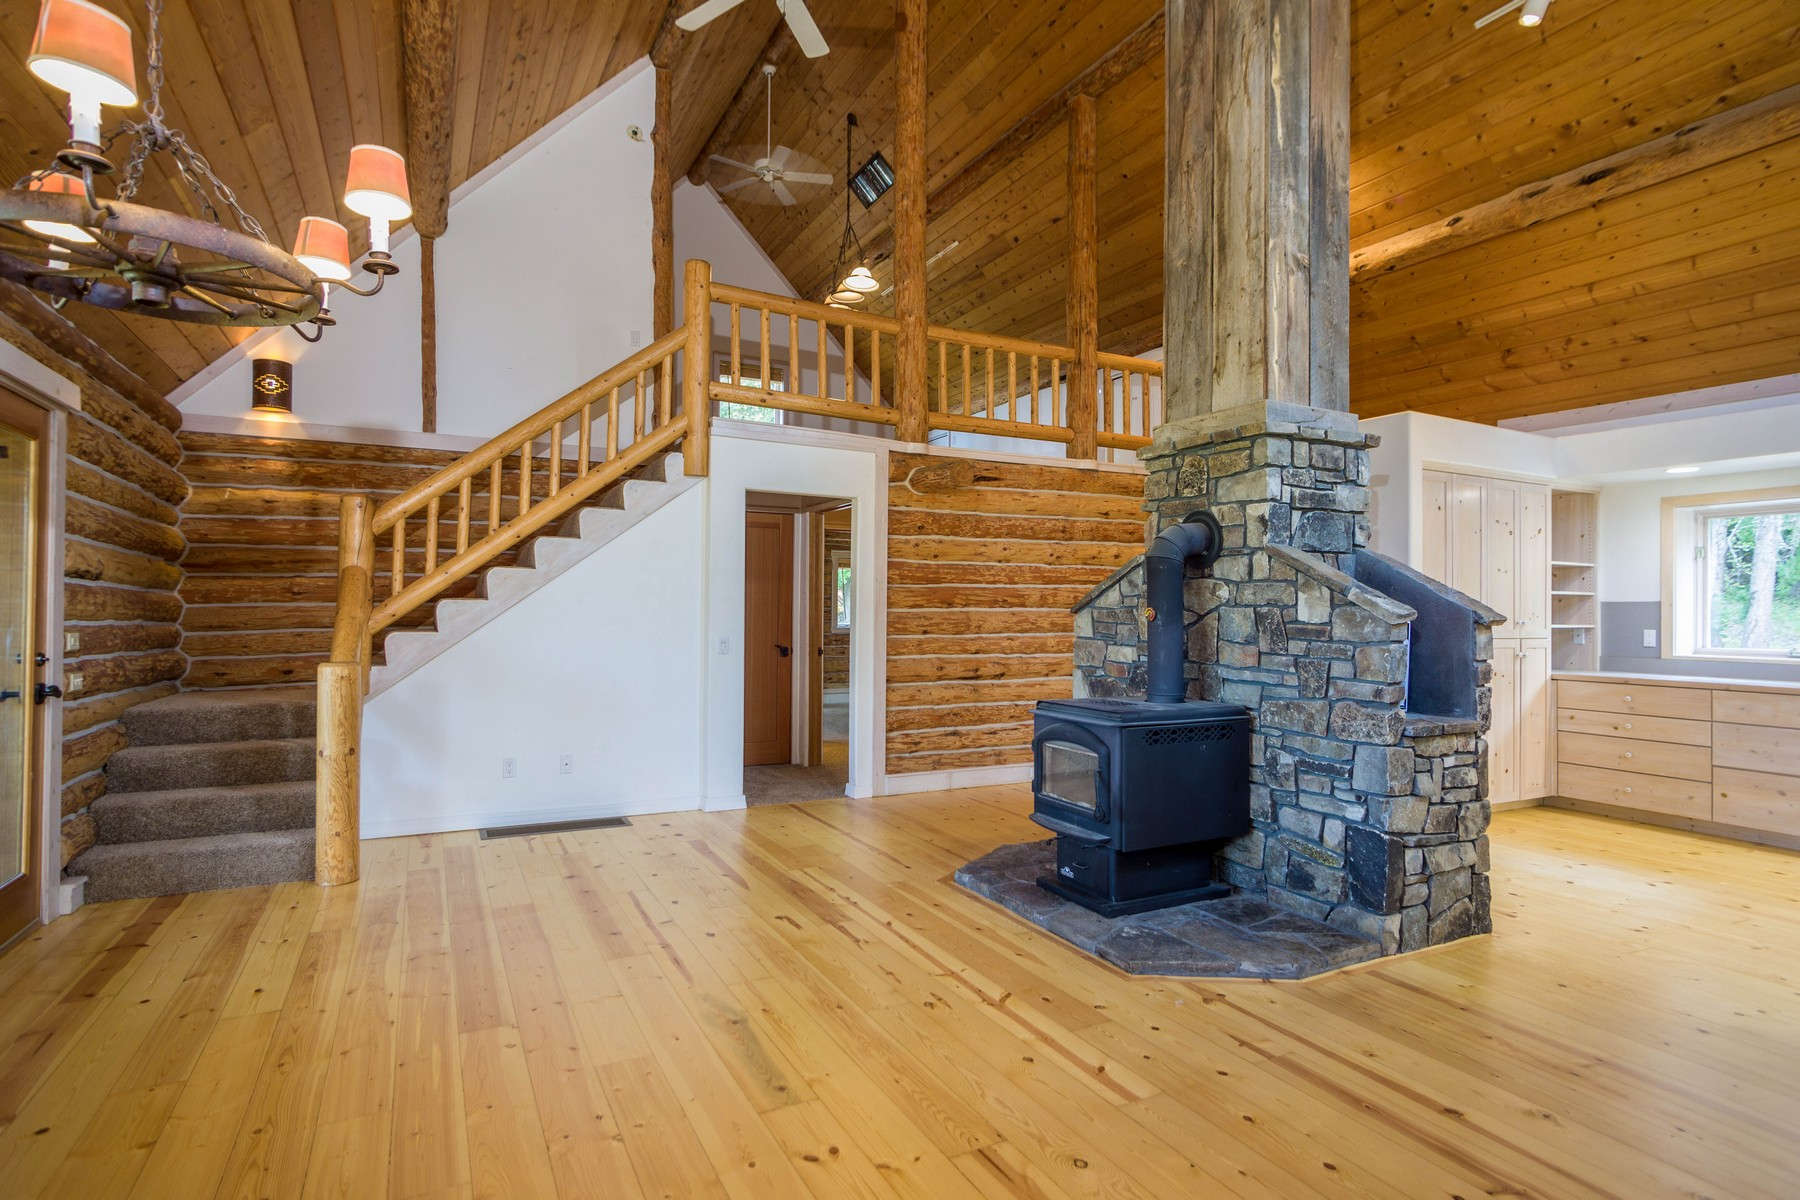 Additional photo for property listing at 1285 Swan Hill Dr , Bigfork, MT 59911 1285  Swan Hill Dr Bigfork, Montana 59911 United States